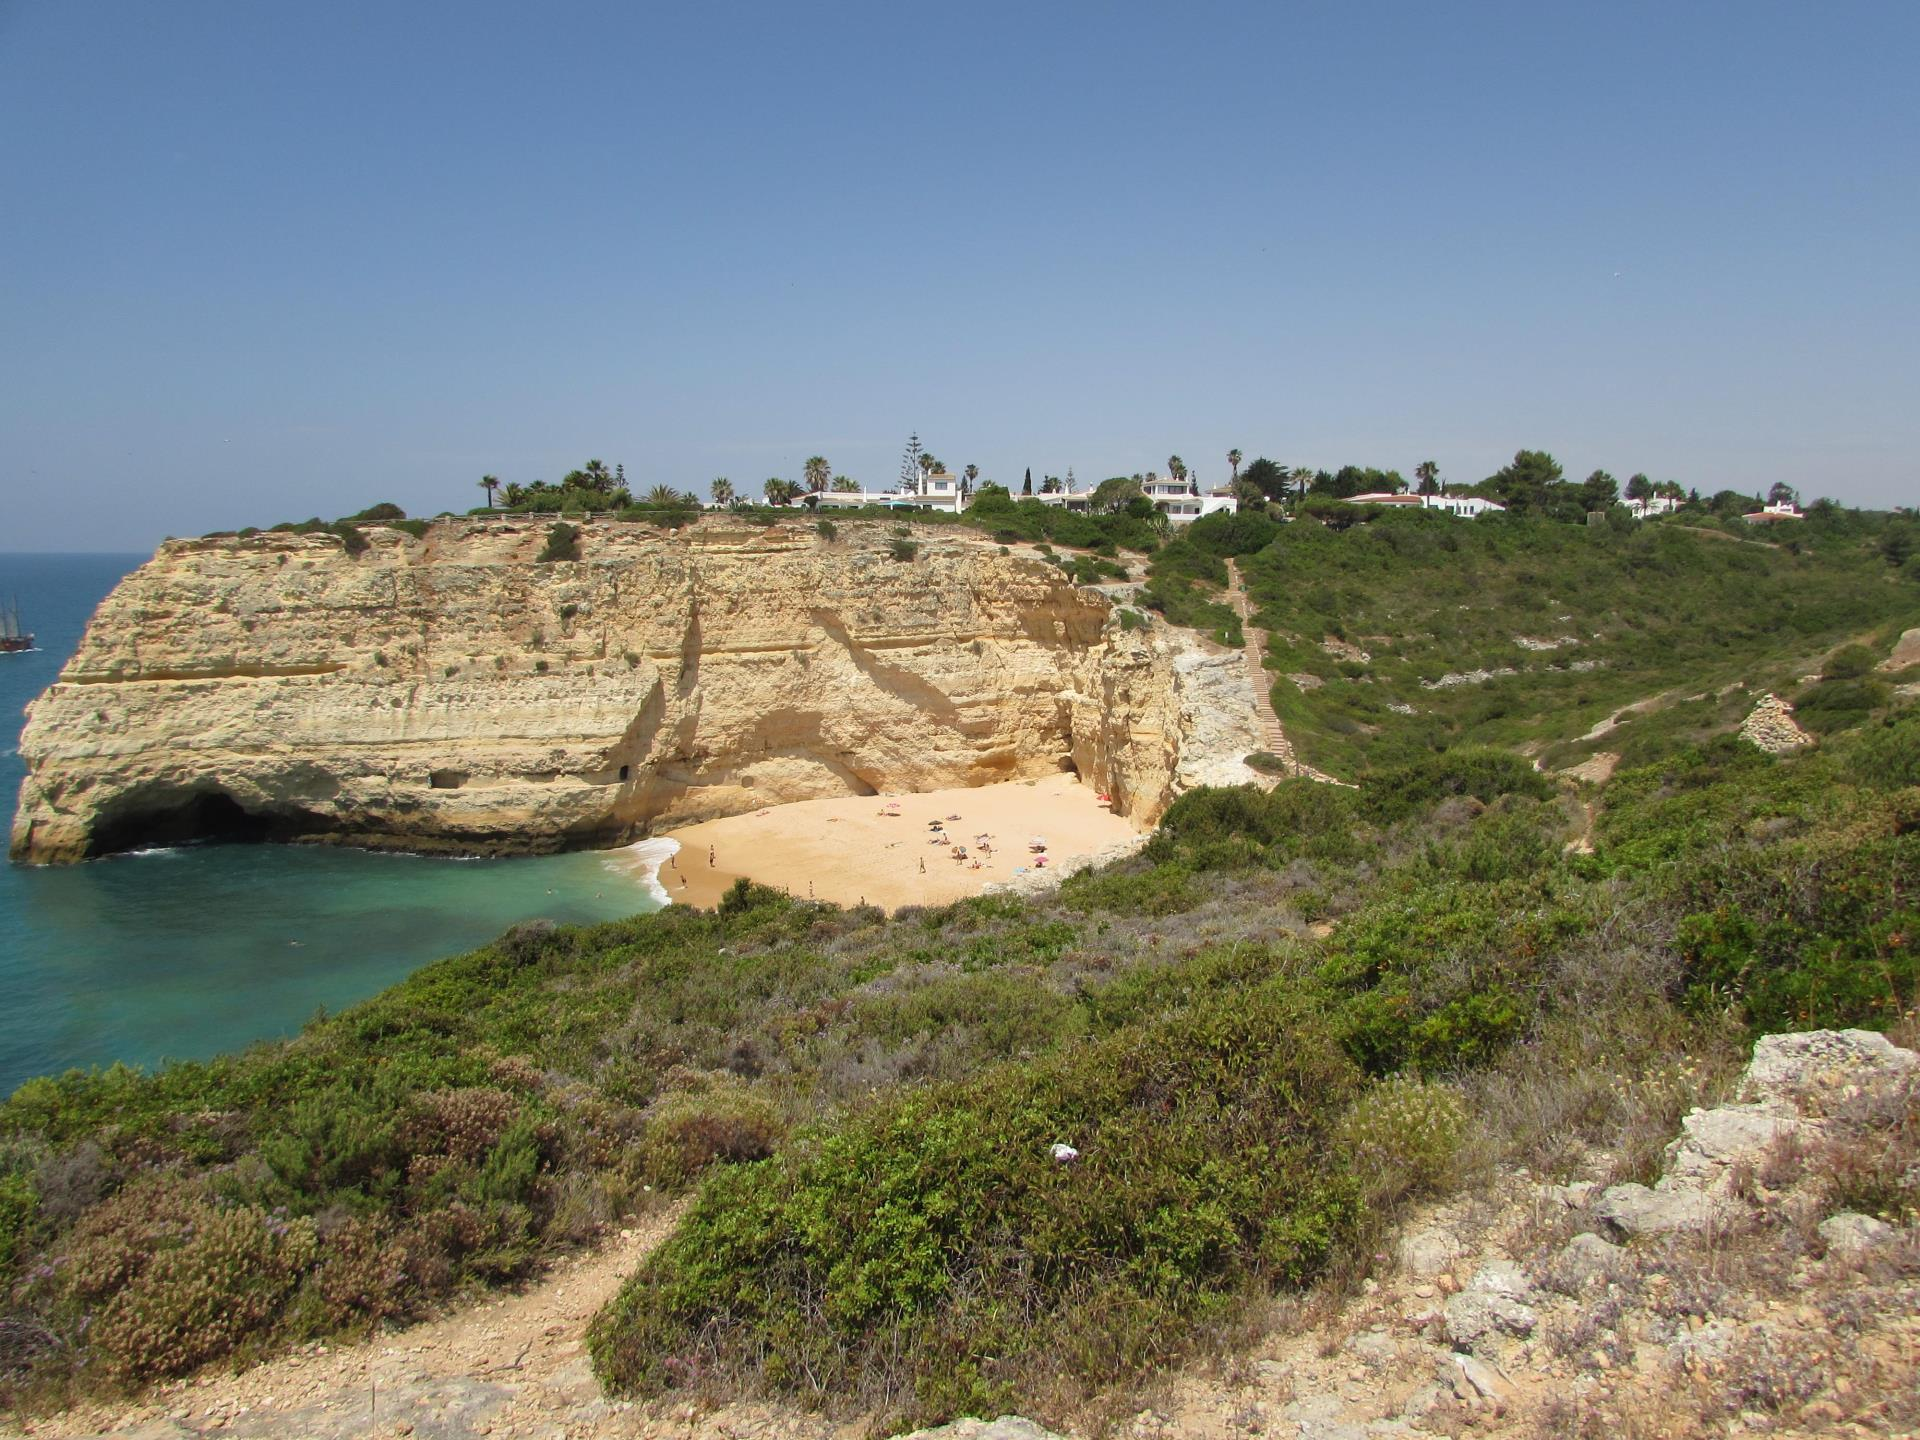 Land for Sale at Terreno com ruina for Sale Other Portugal, Other Areas In Portugal Portugal